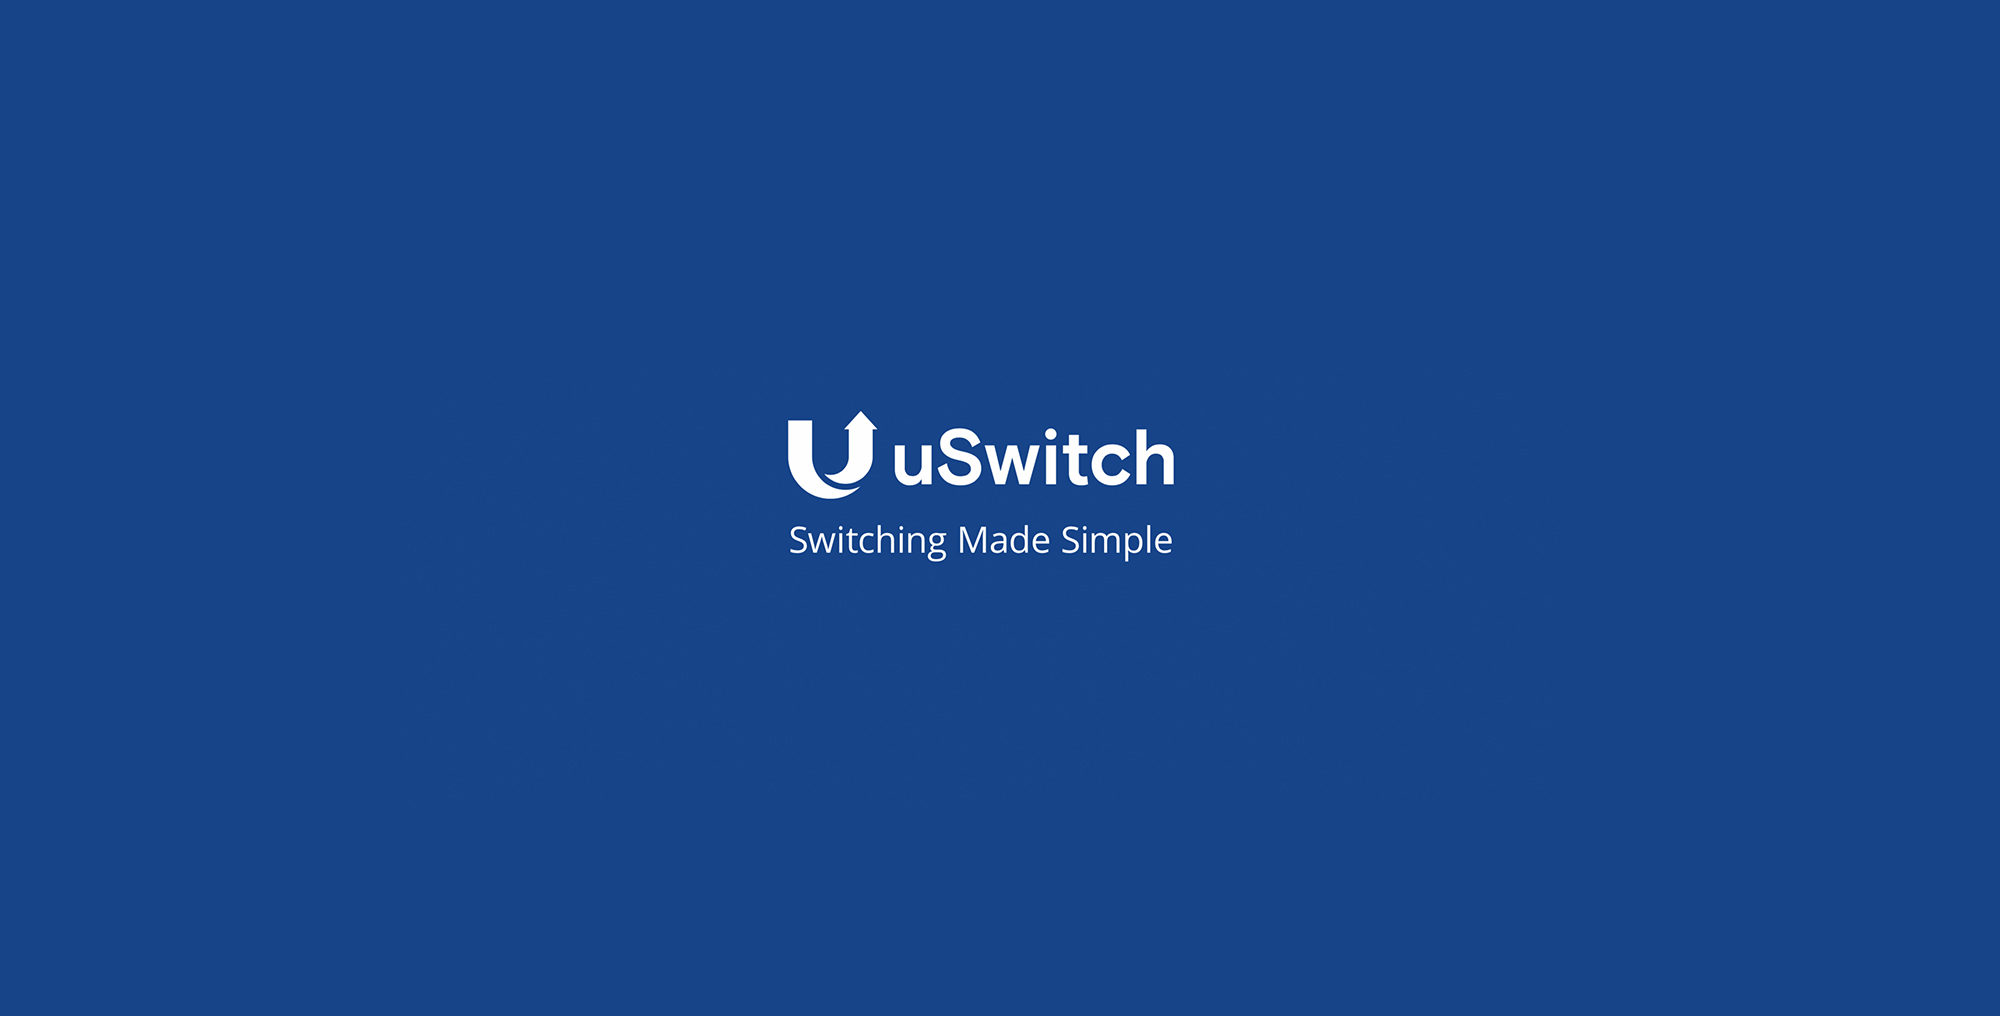 uswitch_banner